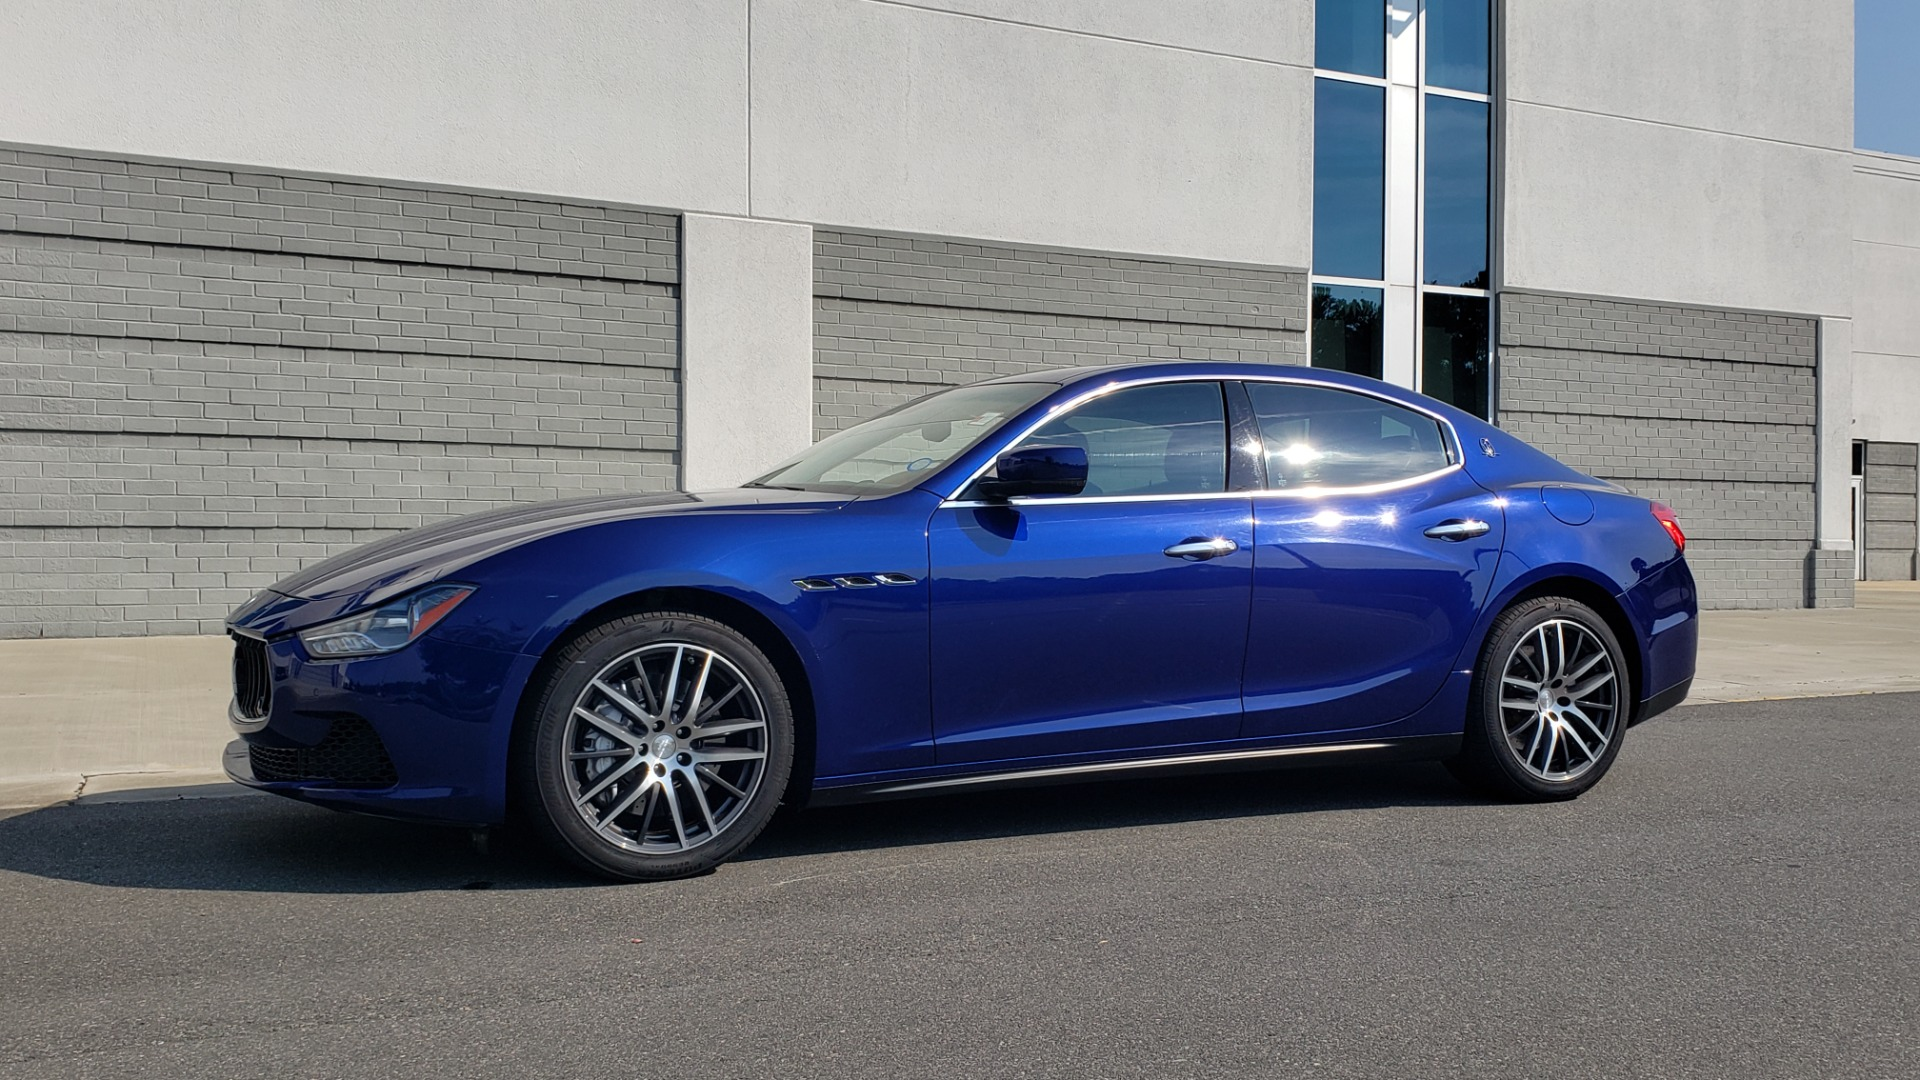 Used 2015 Maserati GHIBLI SEDAN / 3.0L V6 / 8-SPD AUTO / NAV / HTD STS / SUNROOF / REARVIEW for sale $24,495 at Formula Imports in Charlotte NC 28227 4